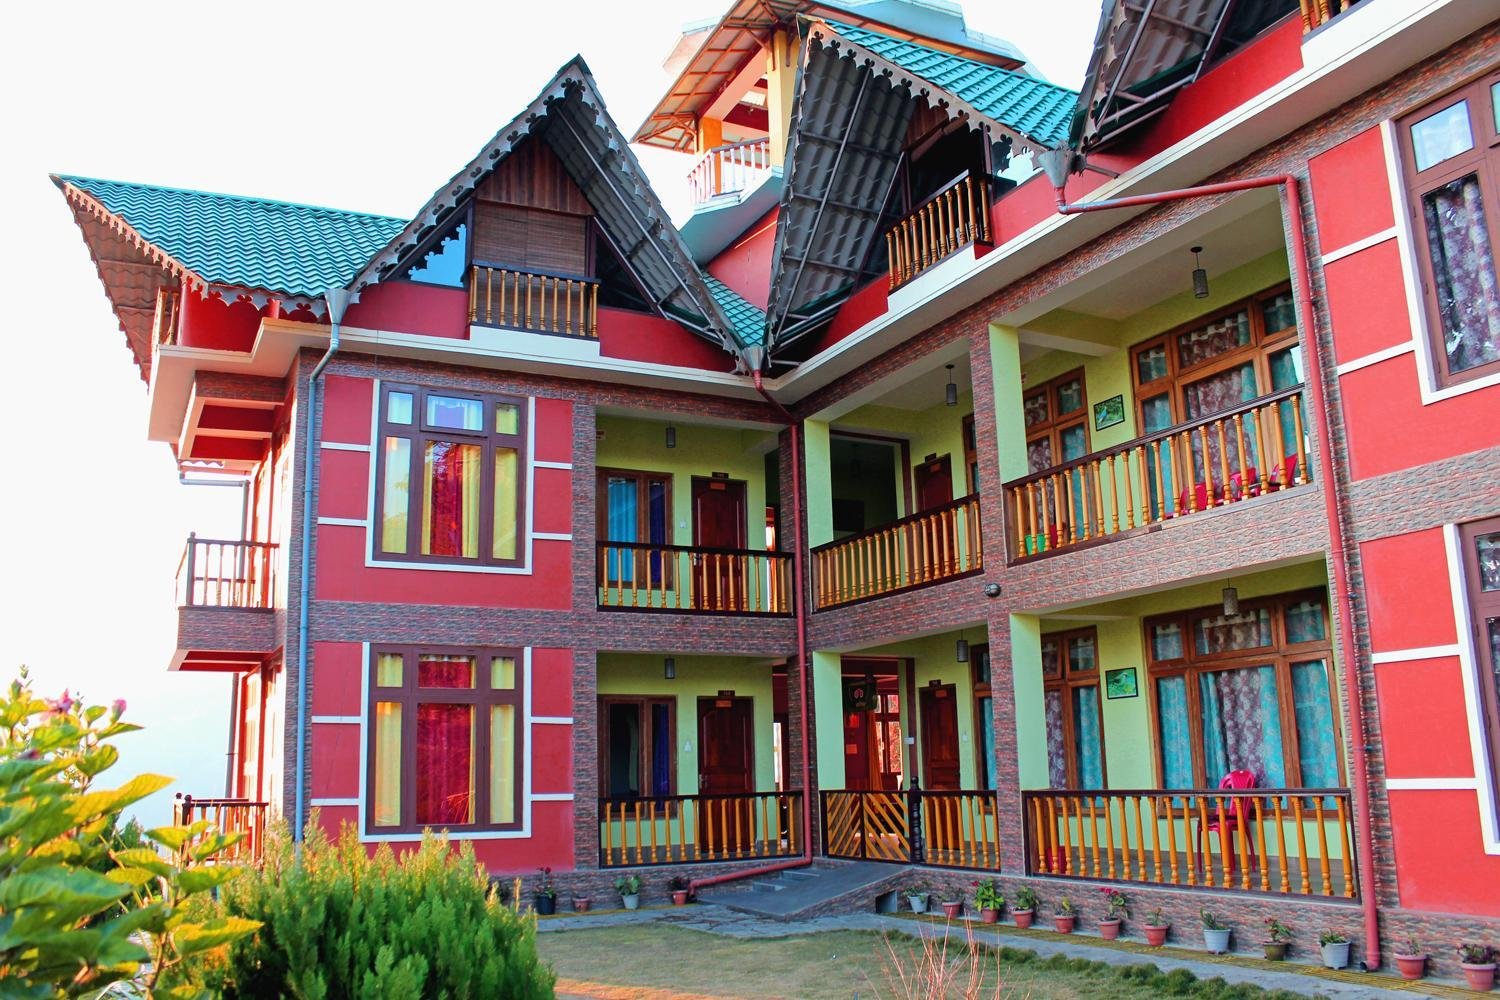 The Red Mud Chalet